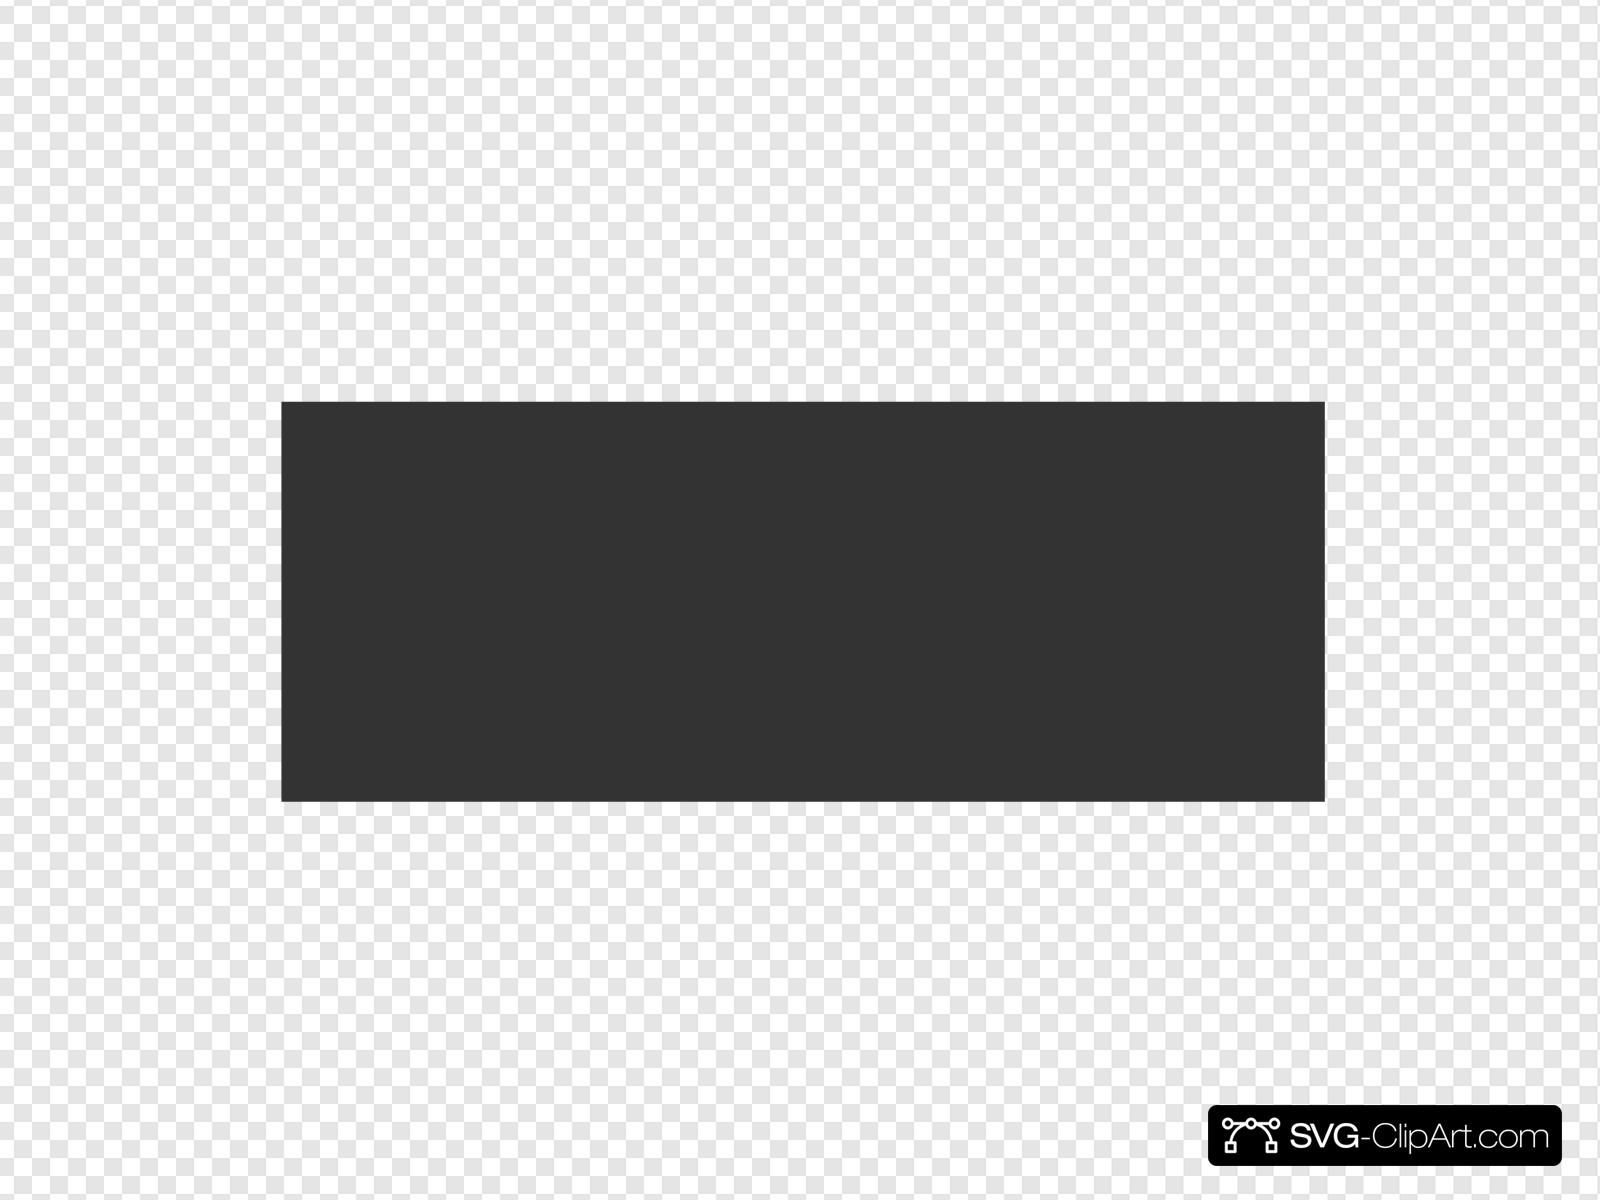 Black Rectangle Clip art, Icon and SVG.